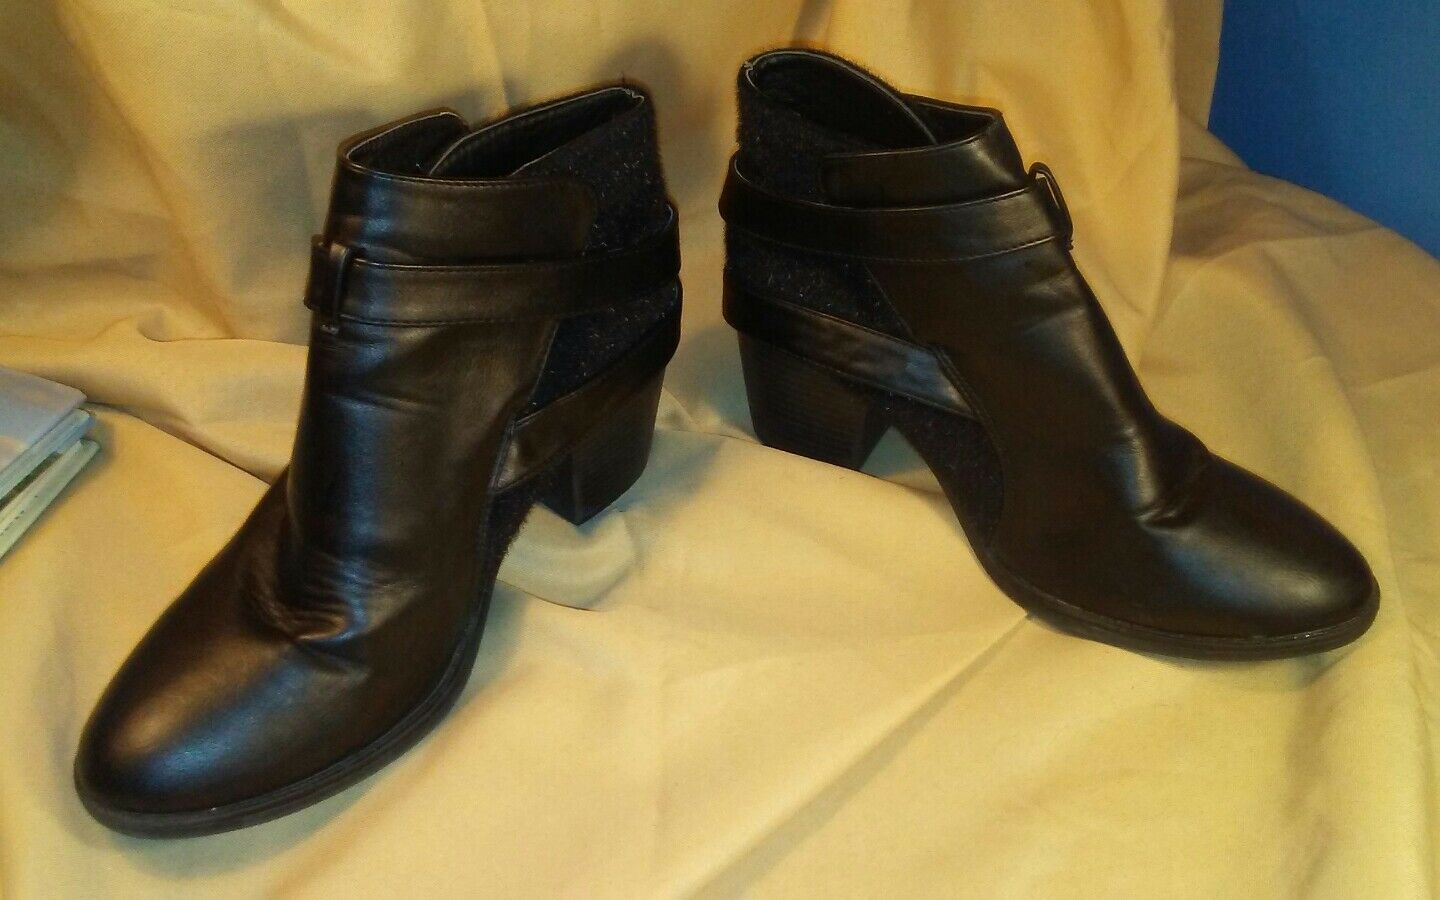 Massini Lillian Faux Leather/Pony Hair Buckled Black Ankle Boots/Booties sz 9M